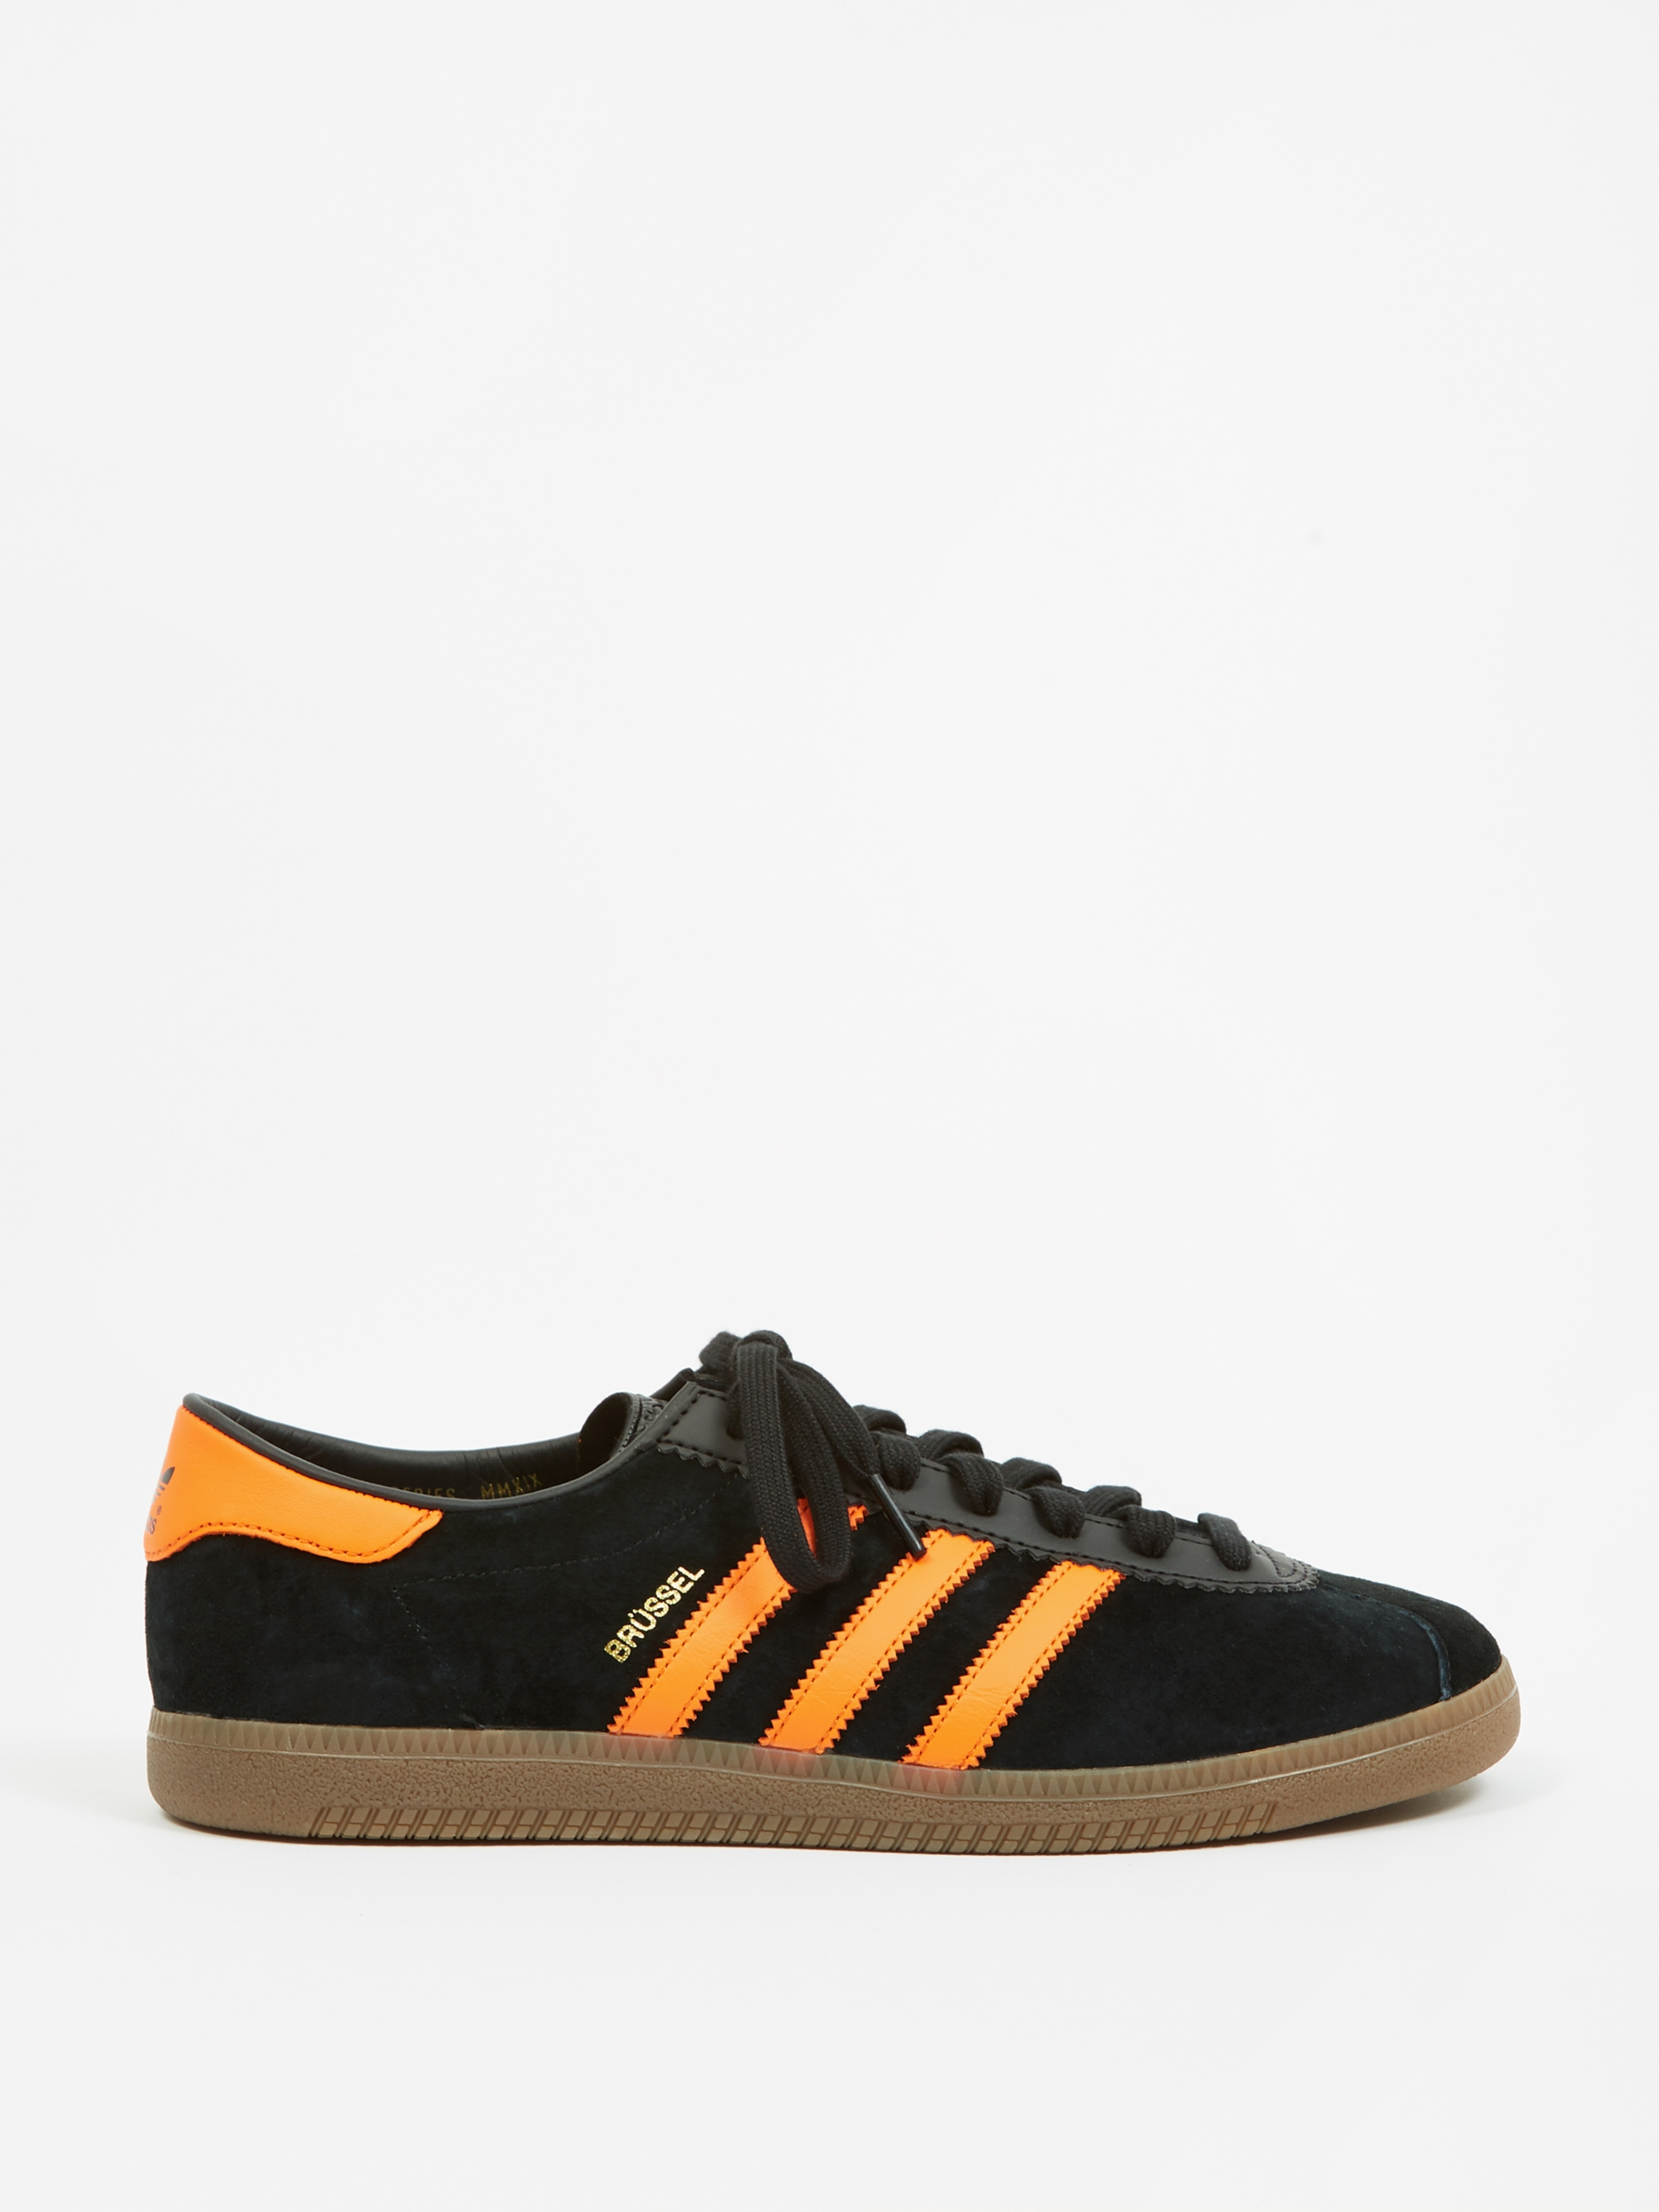 official photos 71888 aa198 Adidas Brussels - Black Orange Gold